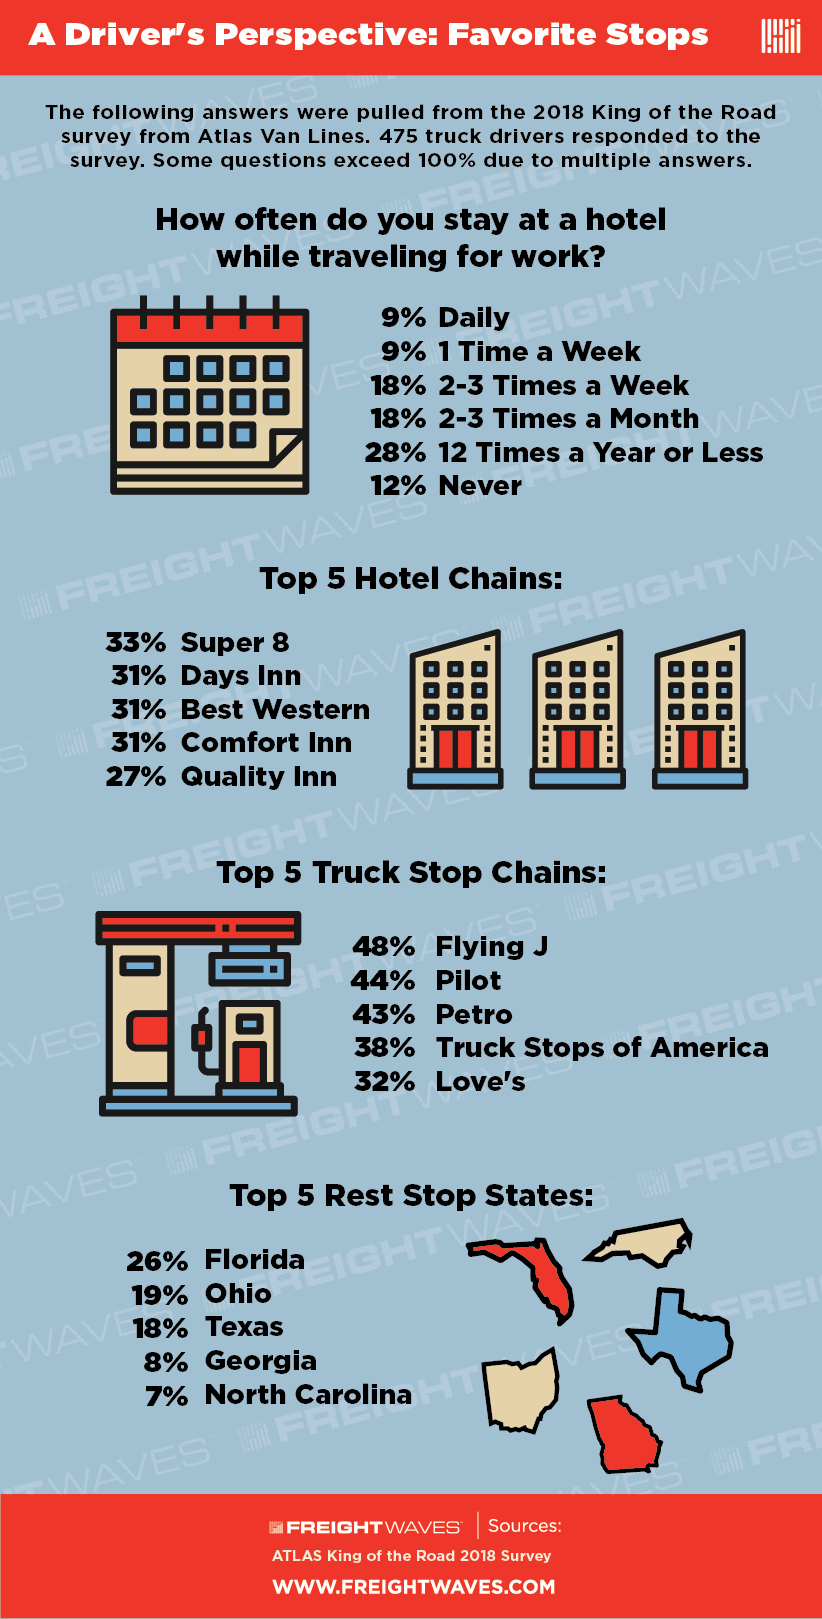 drivers-perspective-on-truck-stops-infographic-frieghtwaves.png